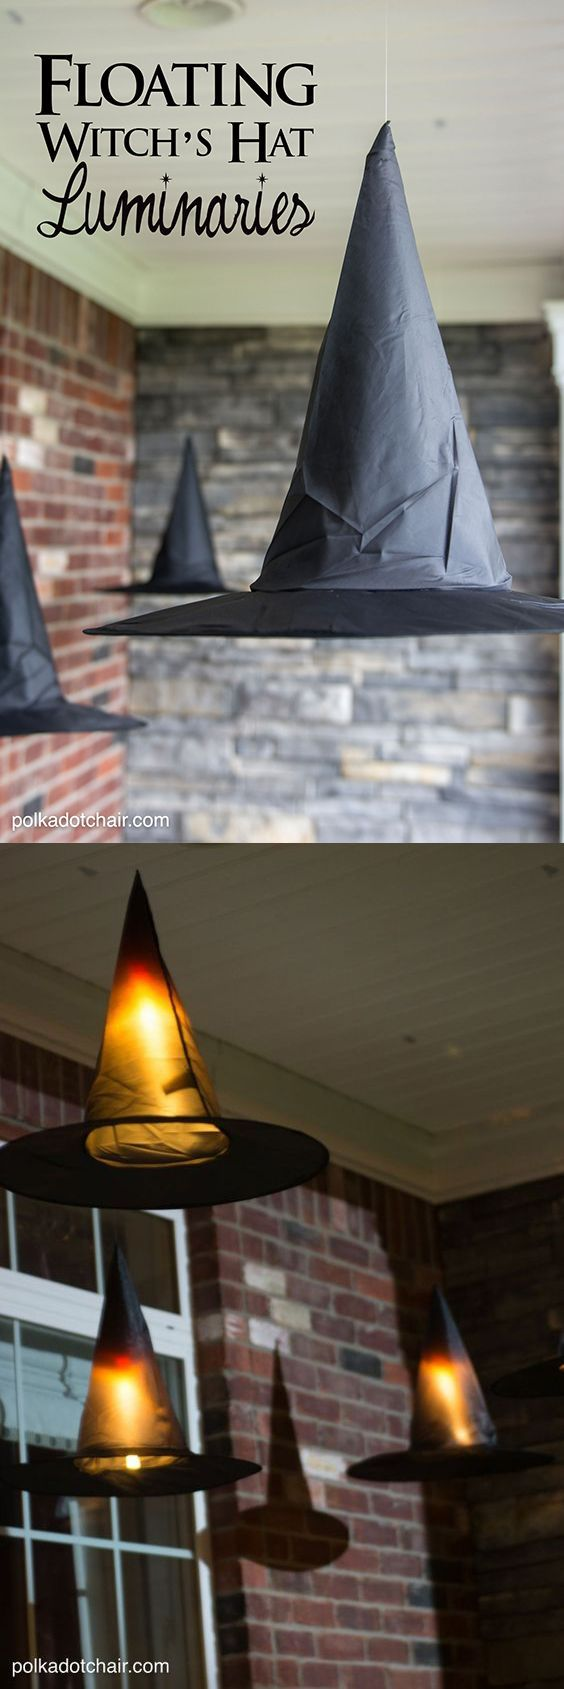 Halloween diy decor - Diy Floating Witch Hat Luminaries Party Decoration Ideasparties Decorationshalloween